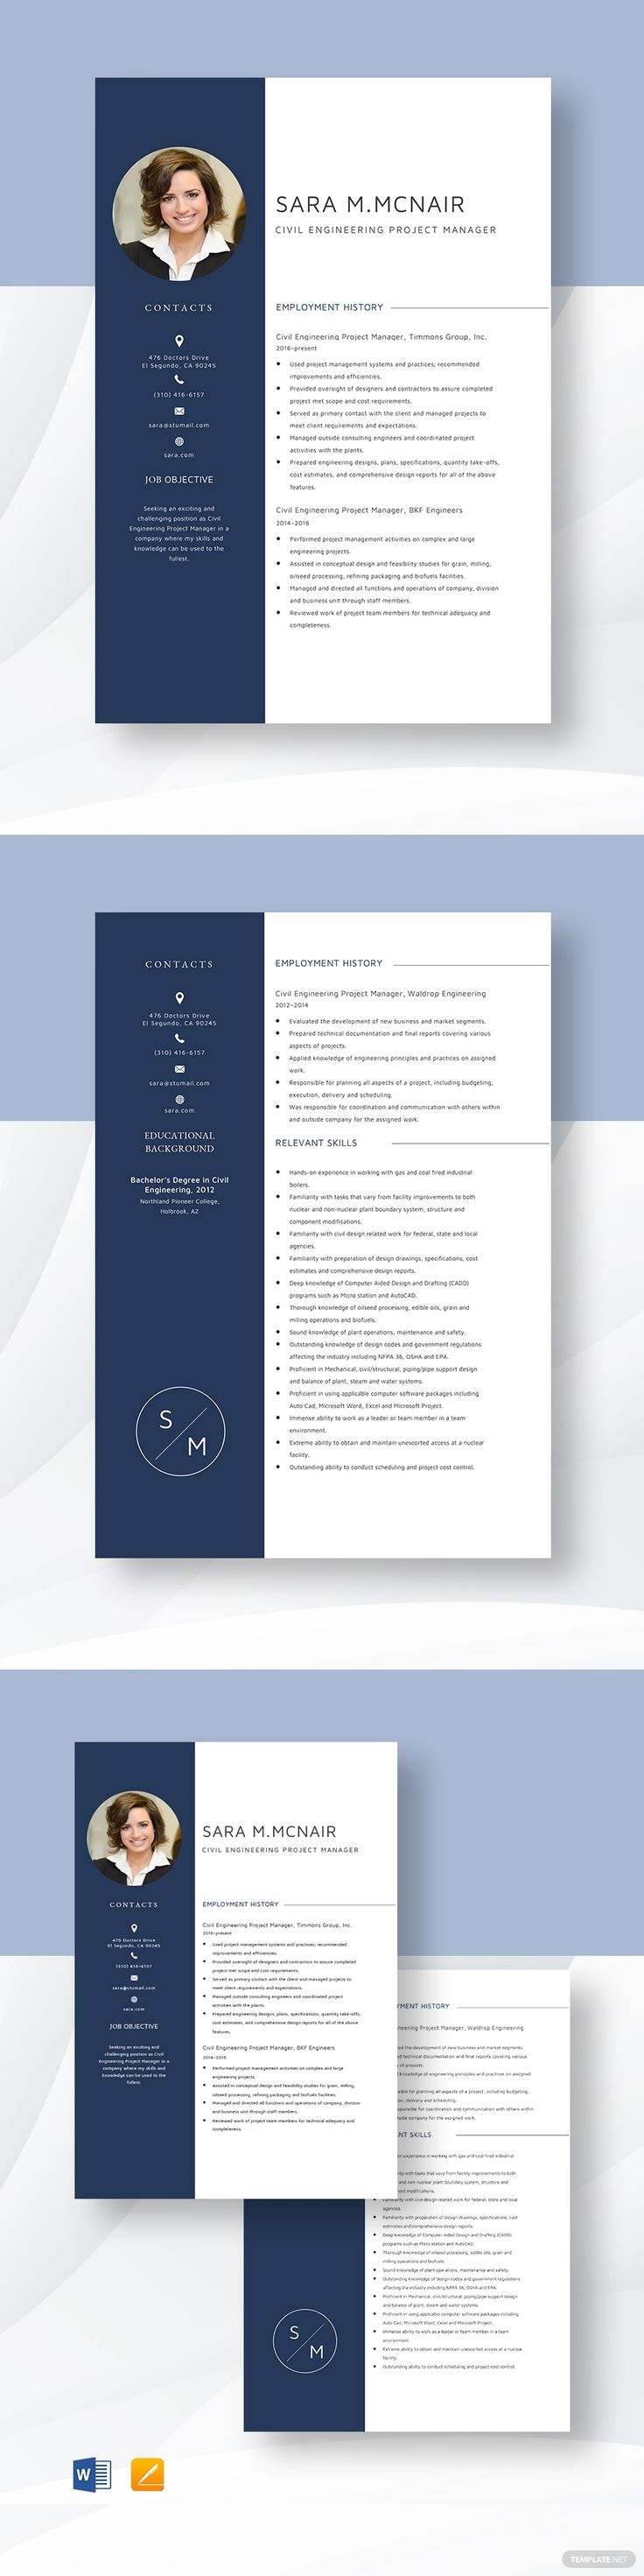 Civil engineering project manager resume template